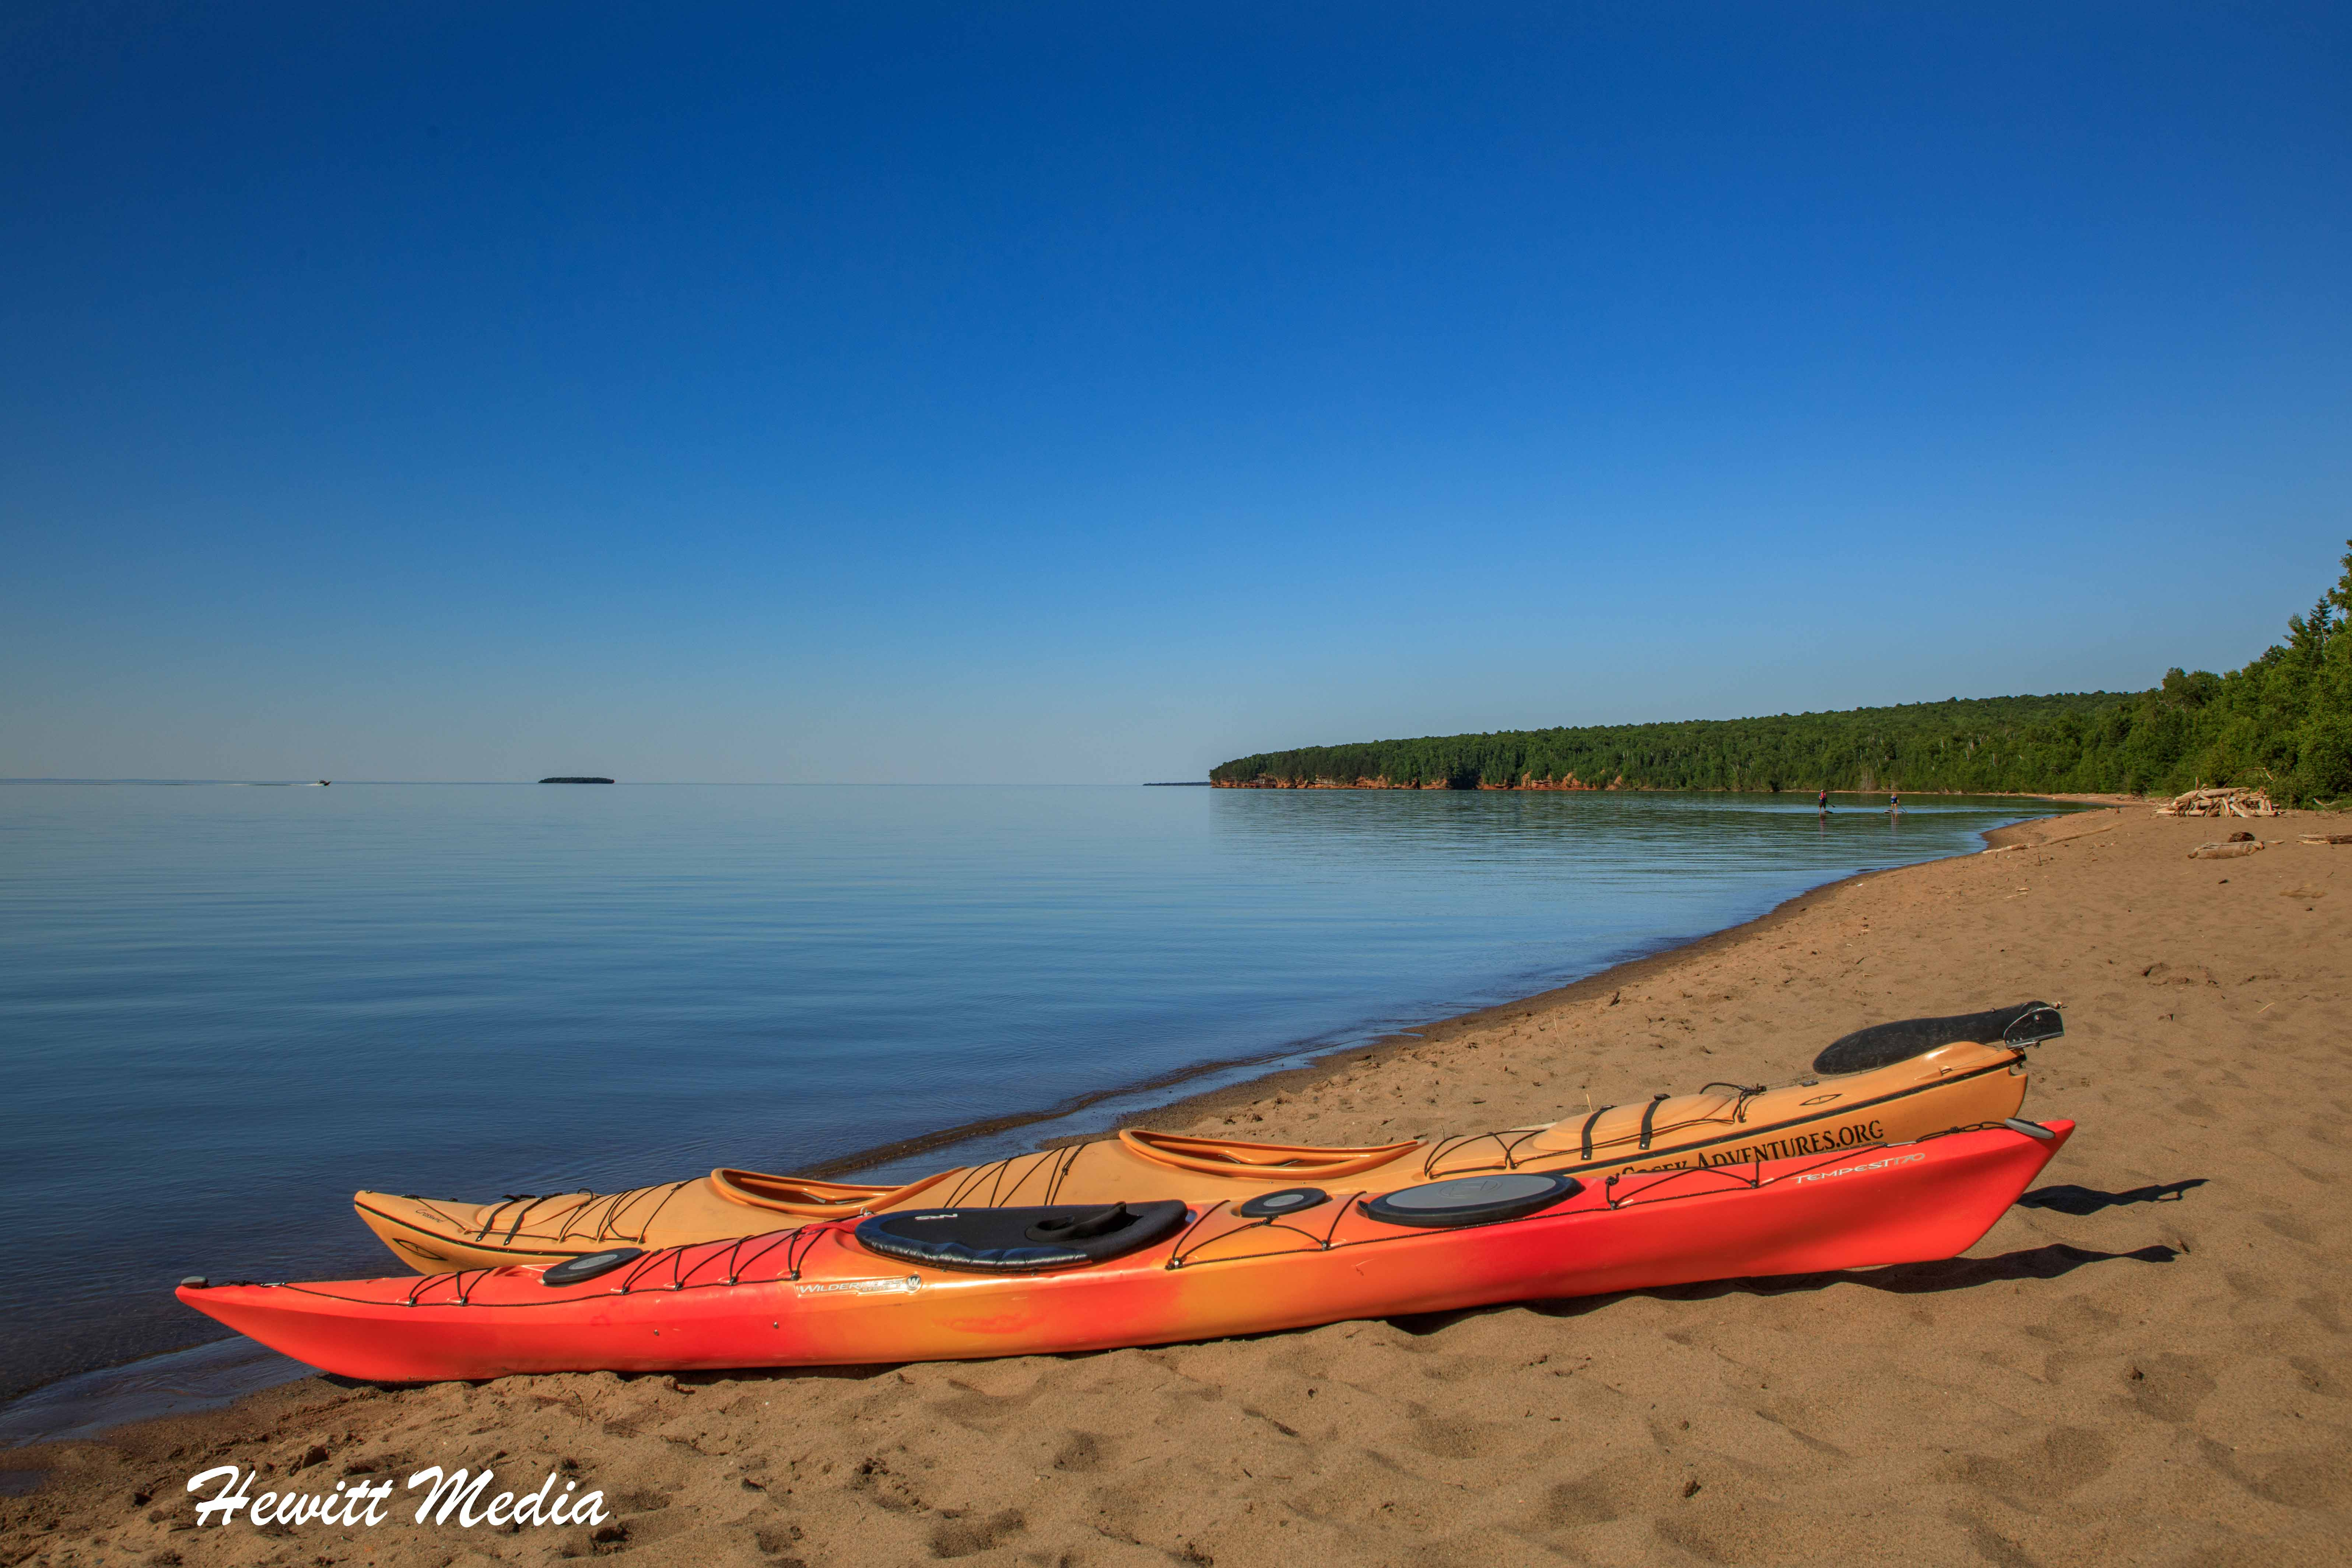 Pictured Rocks Packing Guide